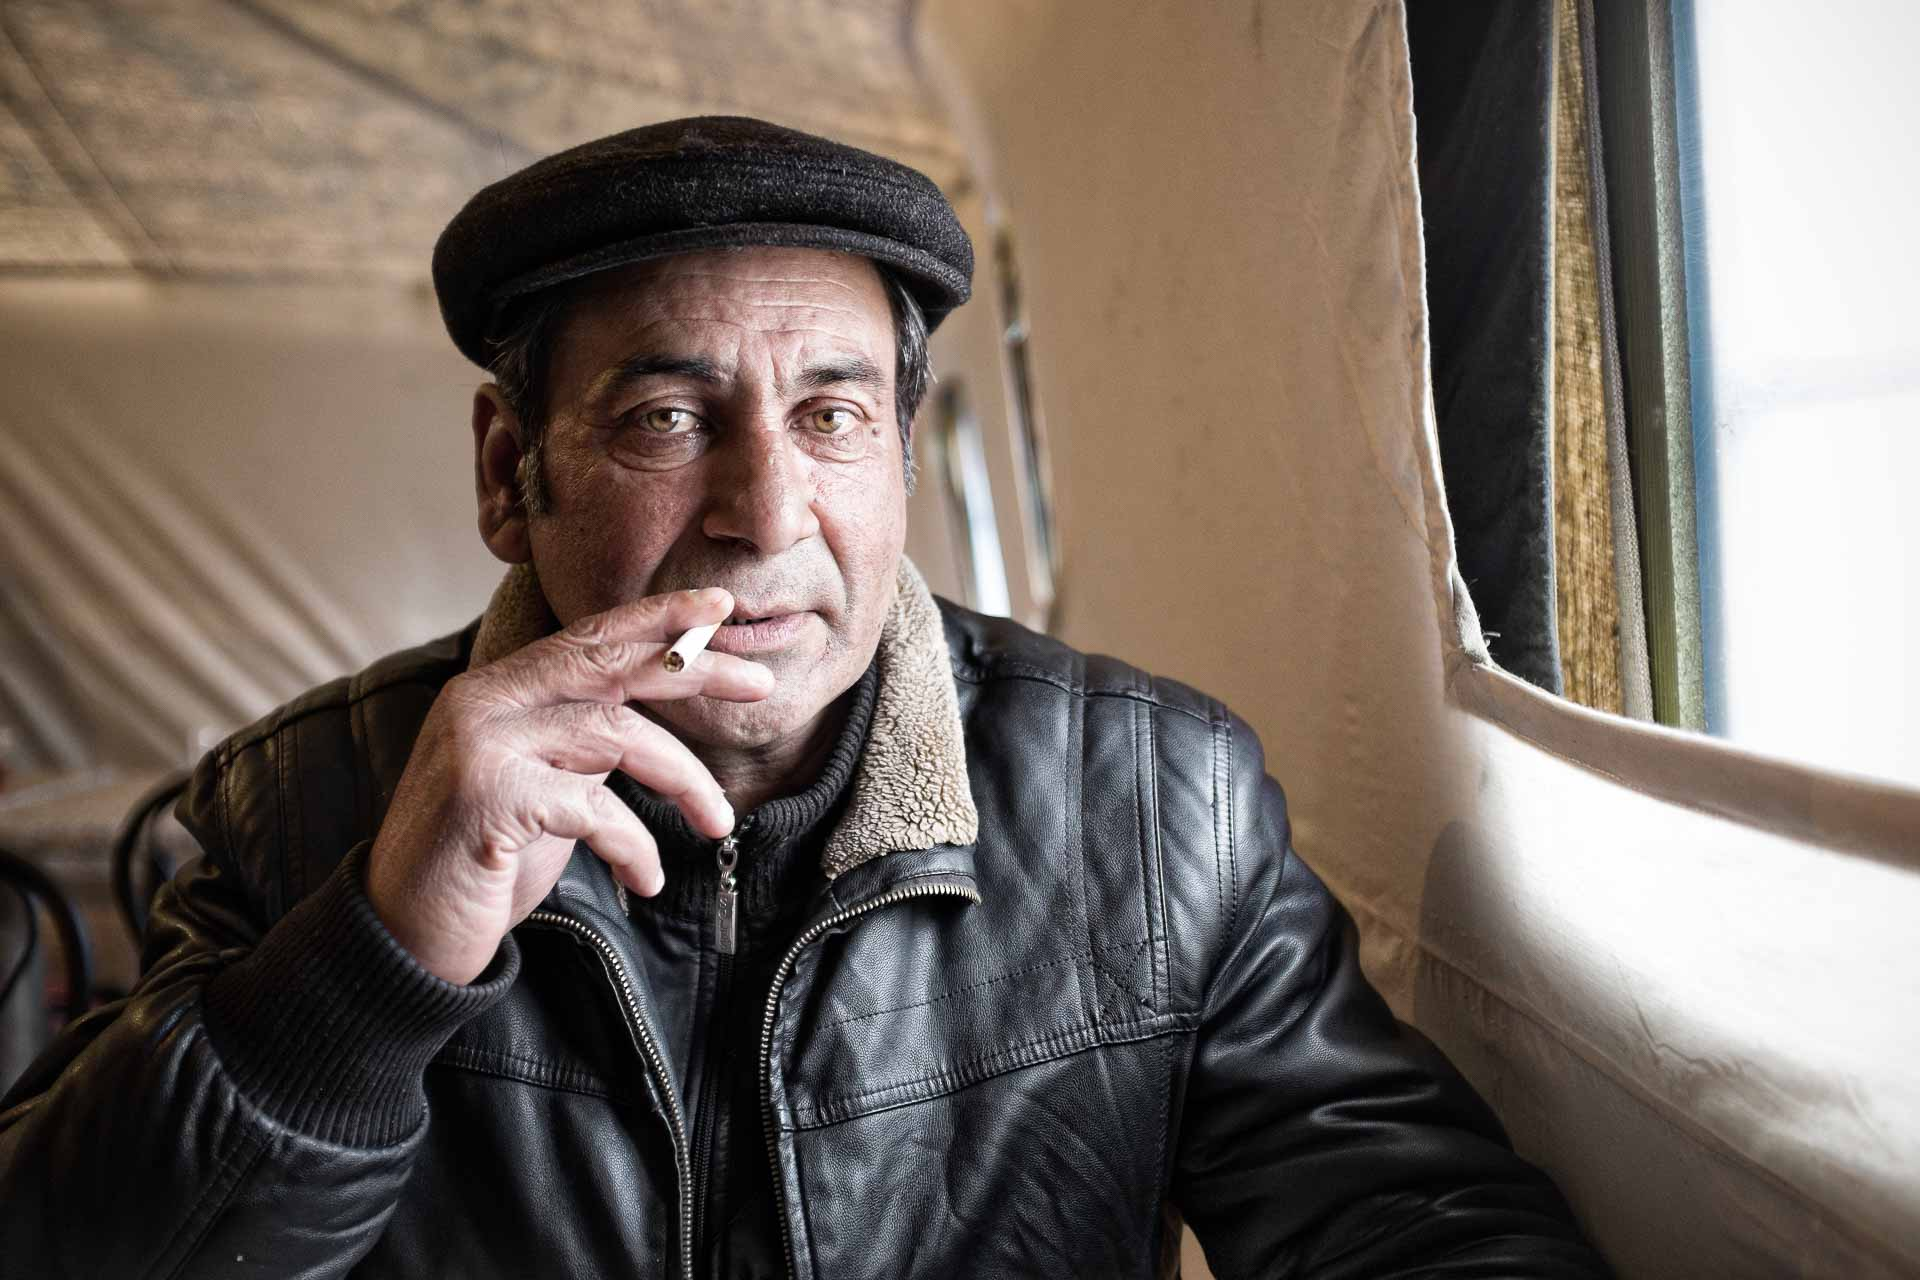 Vassili, 52 is from Yenakevio. The house he used to live in, in Donetsk, has been bombed. His brother could afford to live to Moscow. Vassili could escape from Donetsk but the Ukrainians authorities forbid him to come back to Donetsk. Because of his Gypsies origins, he has been beaten by DNR secessionists. One of is son is living in Moscow. But he has not enough money to join him. Vassili can't help crying, thinking to all what he lost. He now lives in a wagon in Slaviansk railway station. Slaviansk - UKRAINE